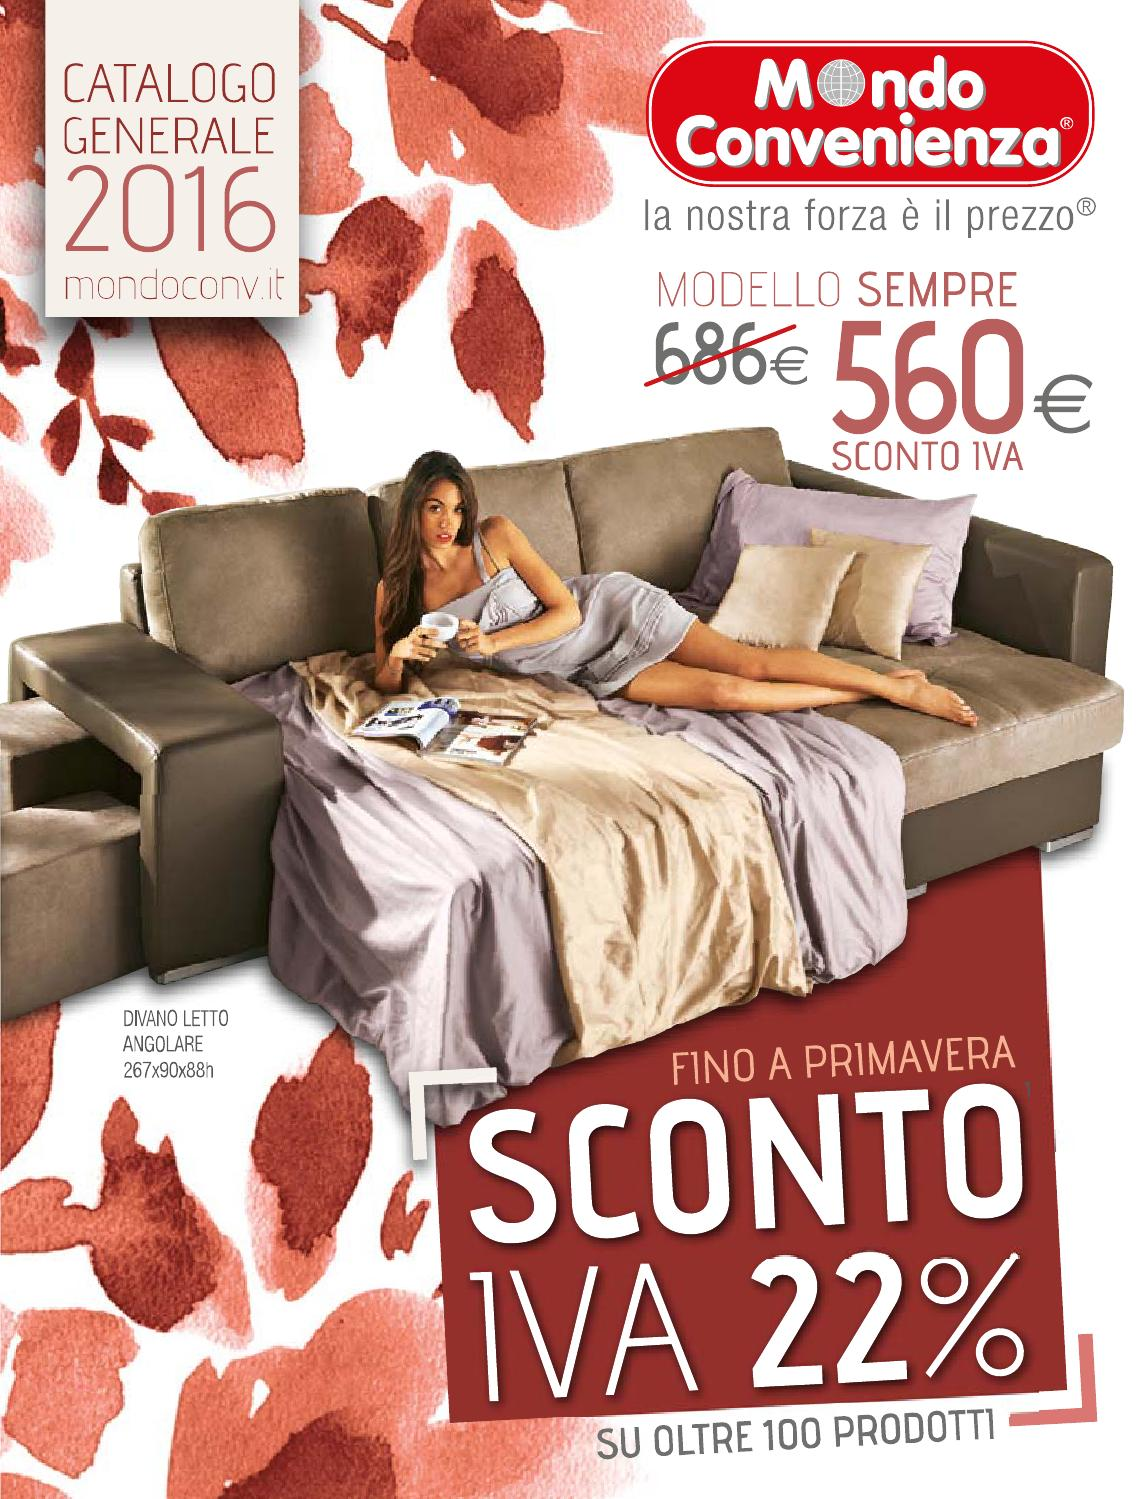 Mondo convenienza catalogo generale 2016 by mobilpro issuu for Mondo scarpa catalogo